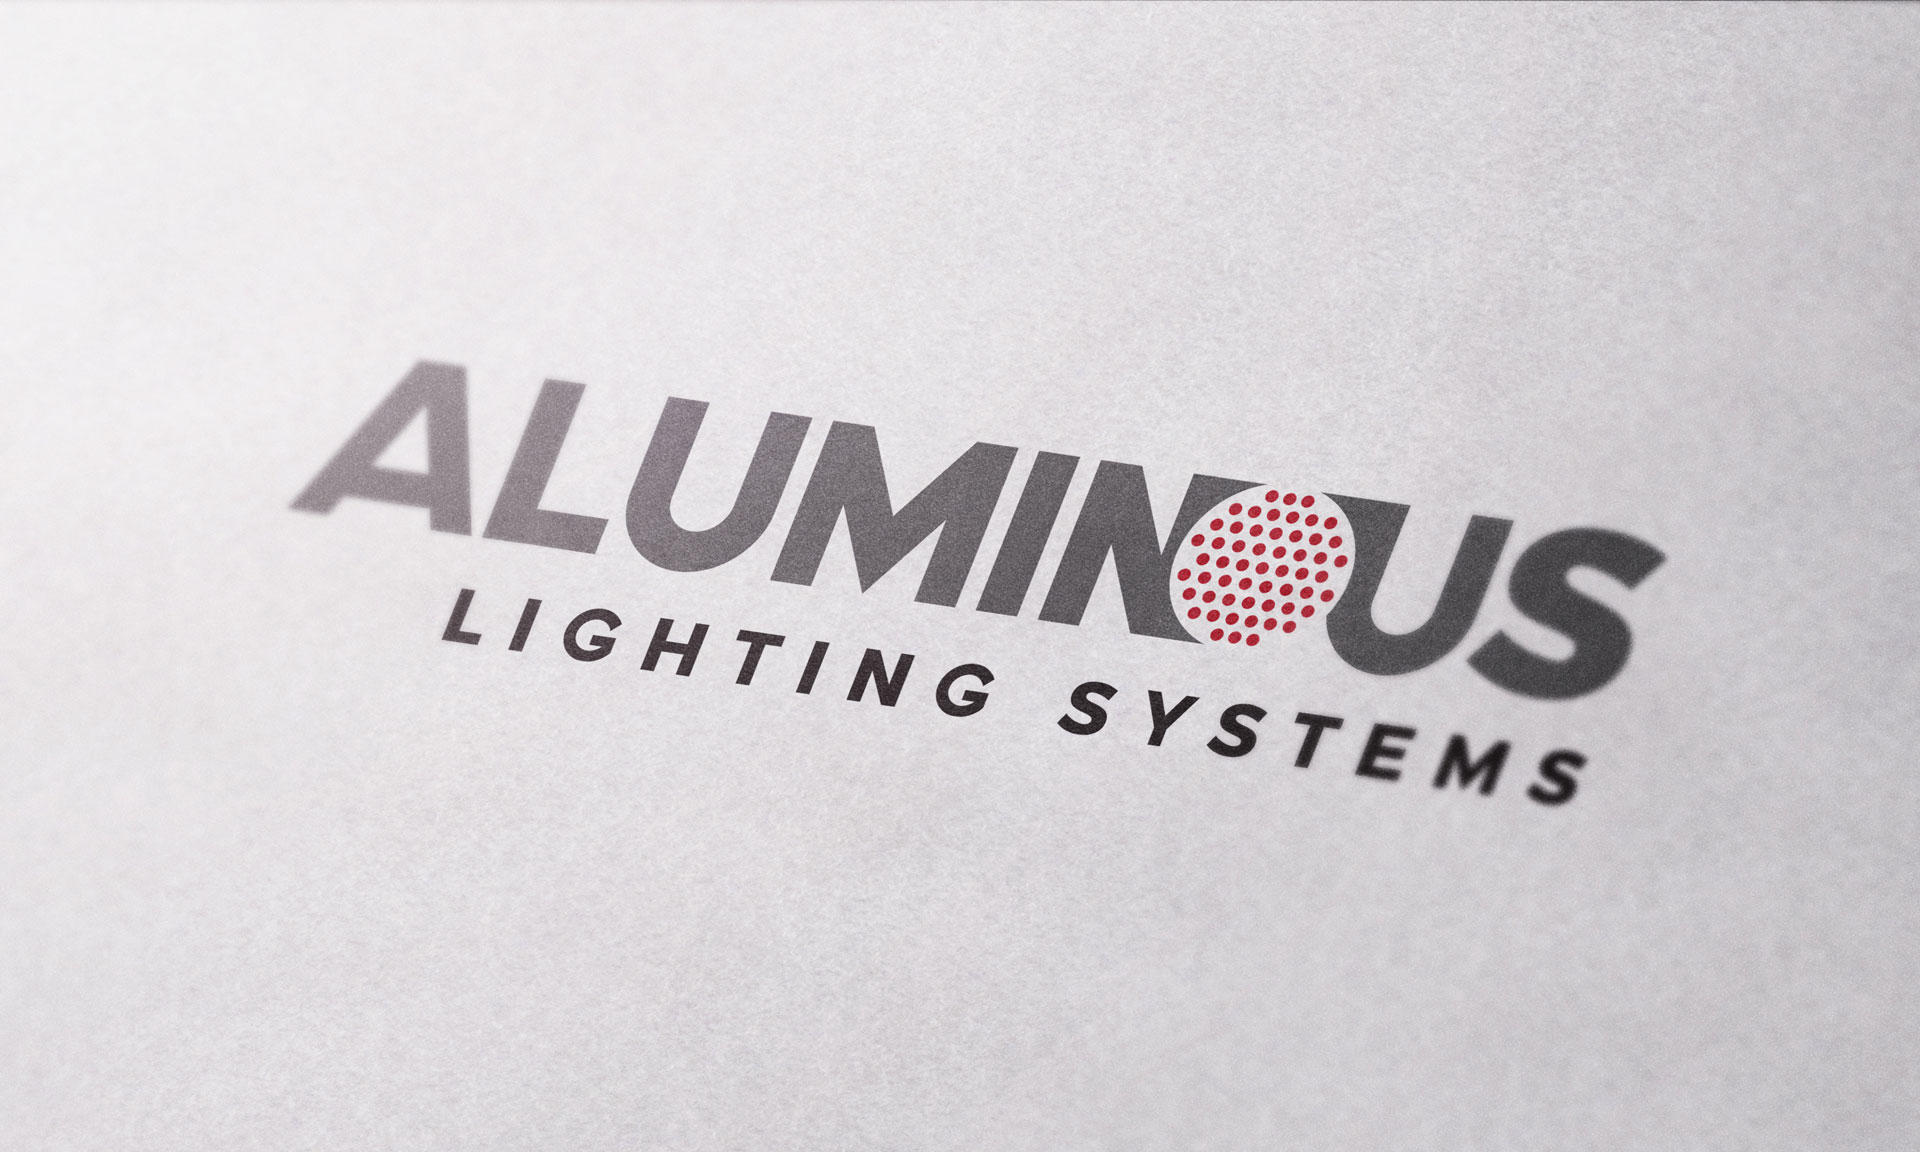 Aluminous Lighting Systems